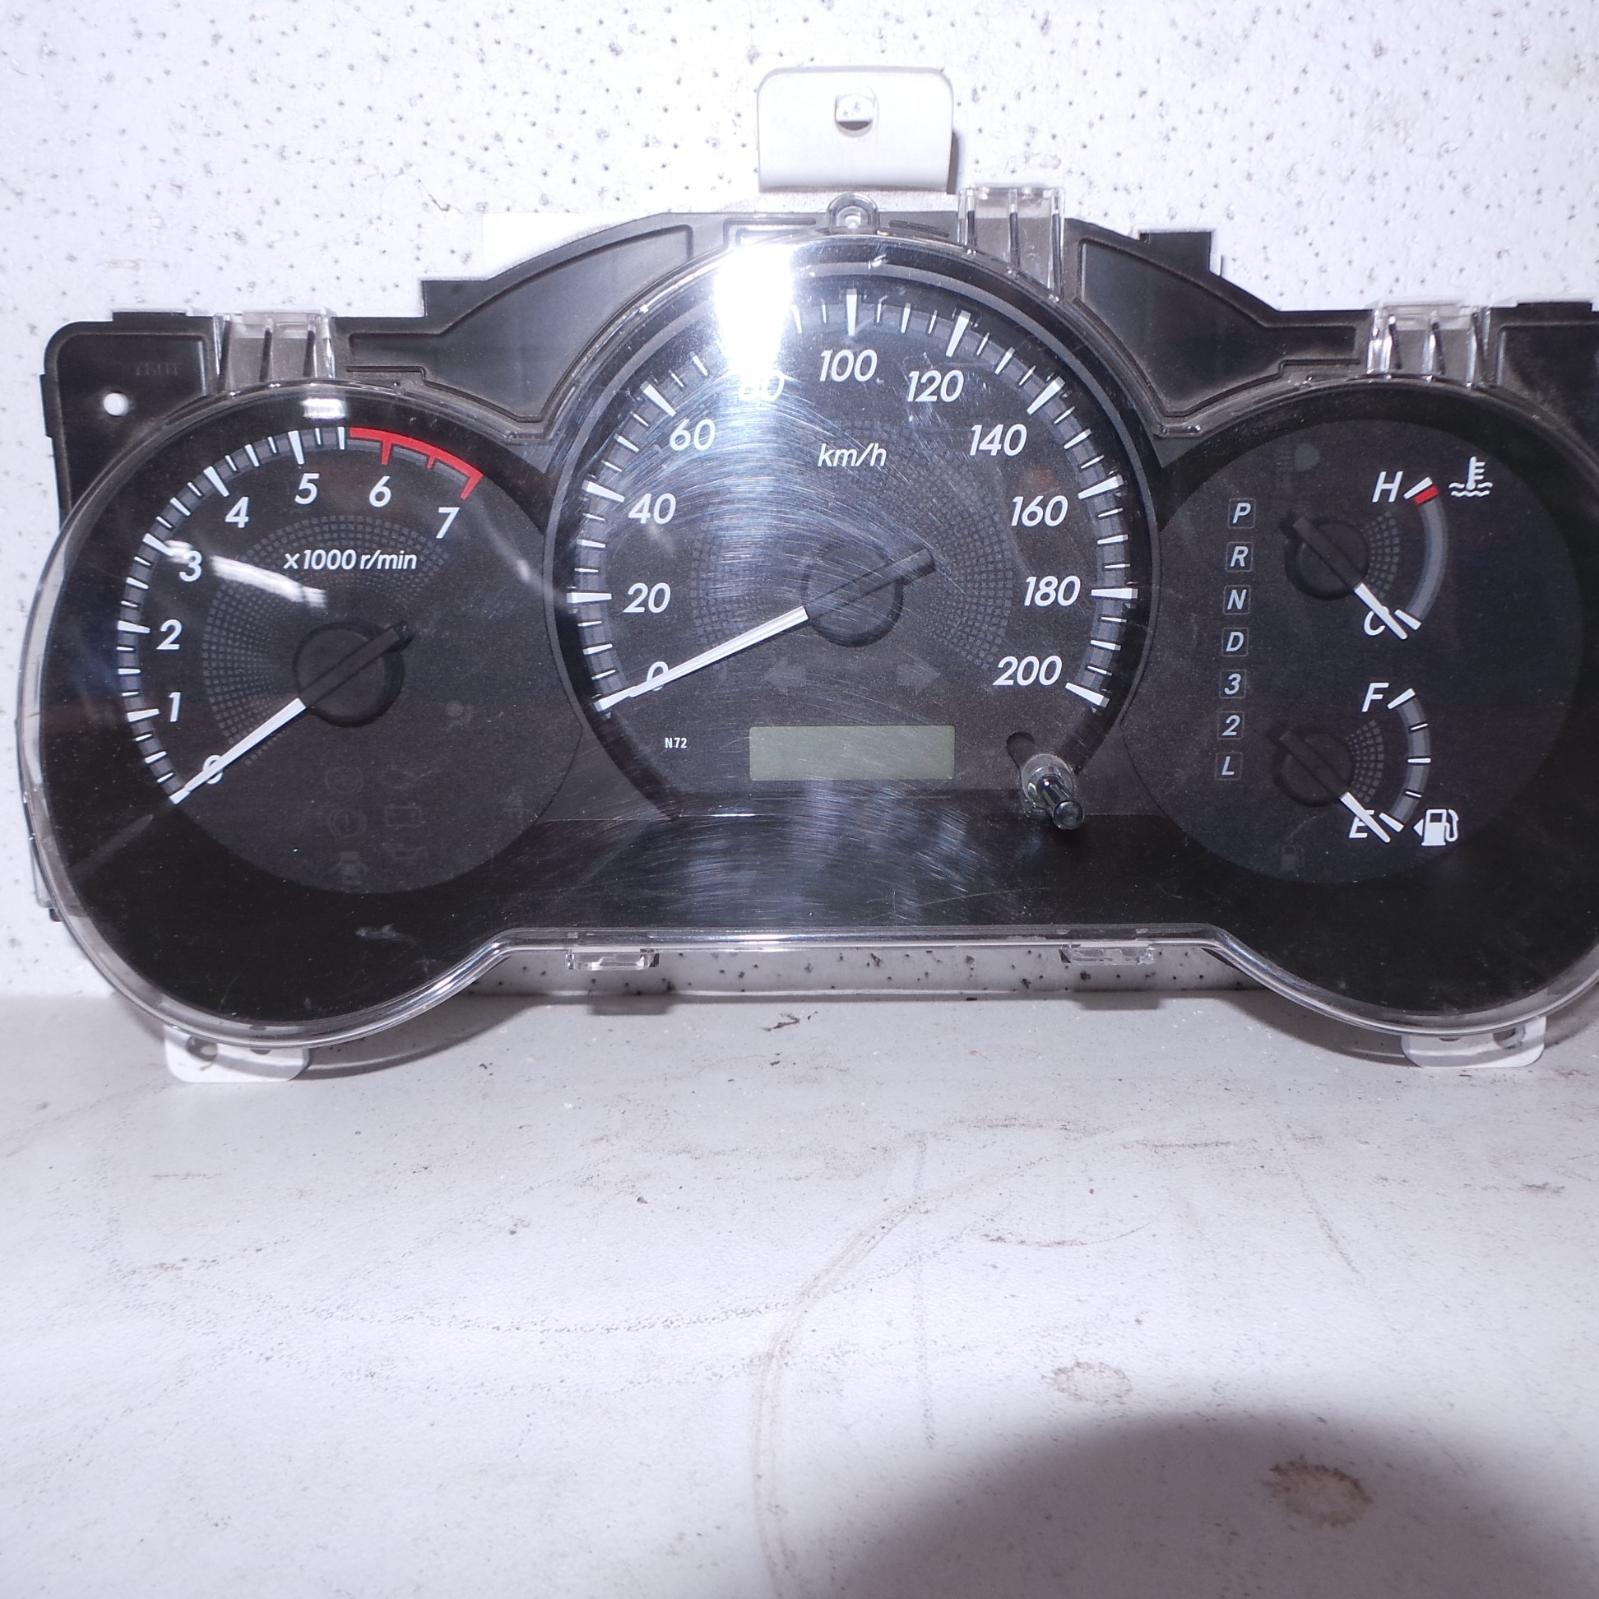 TOYOTA HILUX, Instrument Cluster, PETROL, 2.7, AUTO T/M, 2WD, WORKMATE, 07/11-08/15